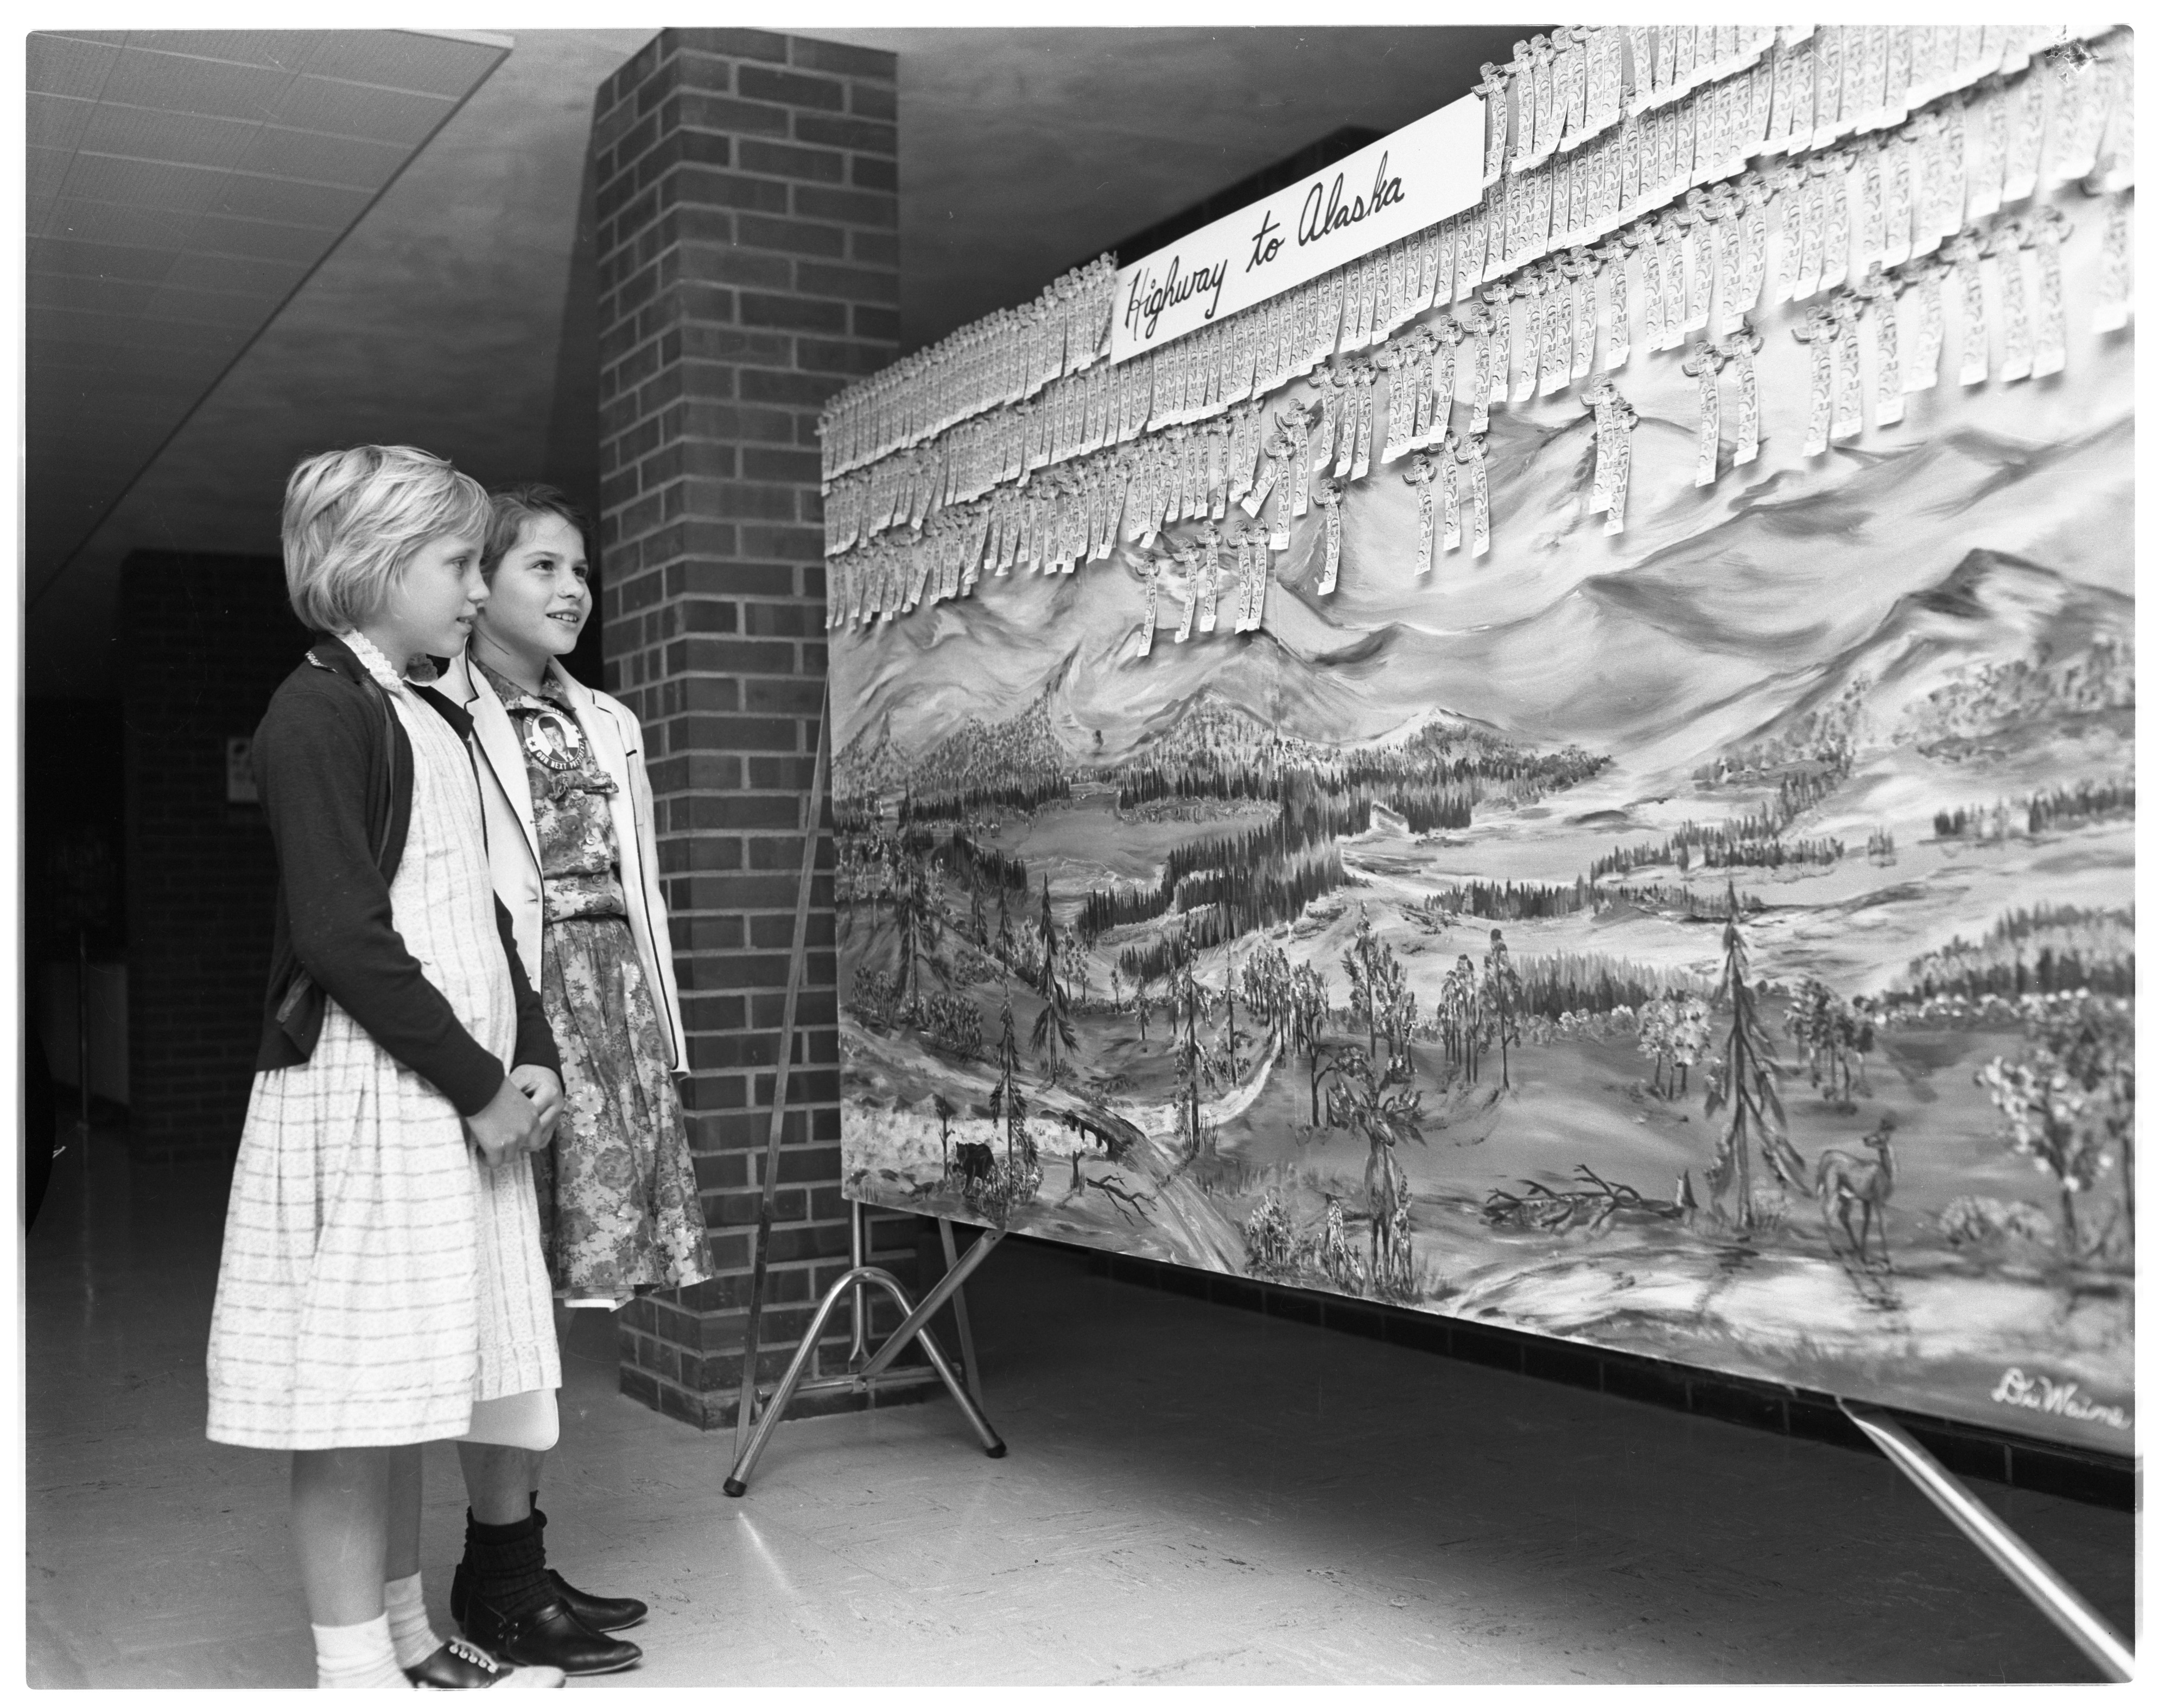 """Highway To Alaska"" is Theme of Ann Arbor Public Library 1960 Summer Reading Club, September 1960 image"